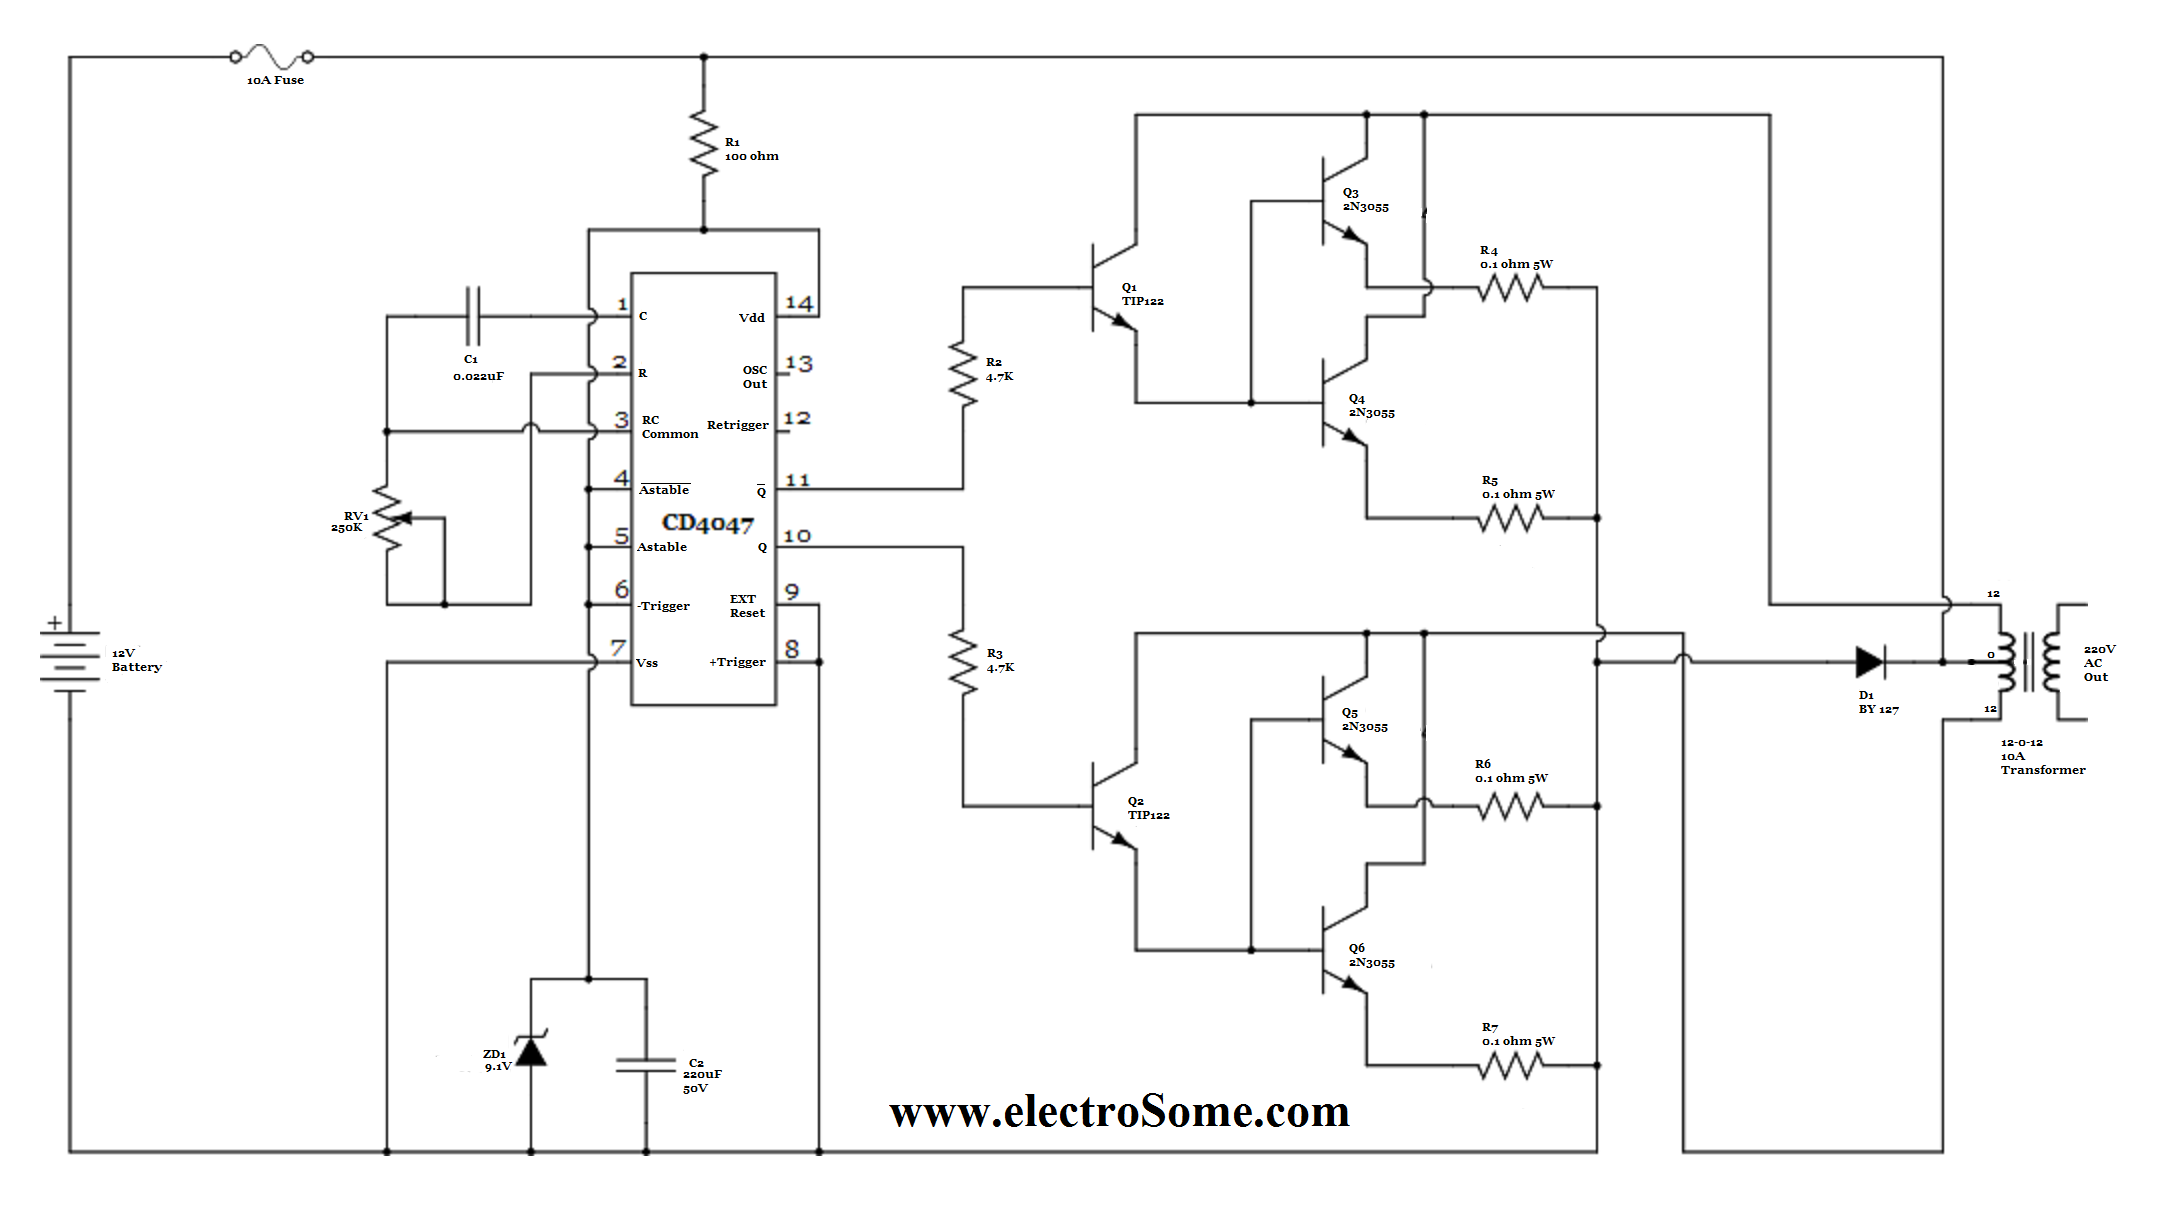 Simple Inverter Circuit using CD4047